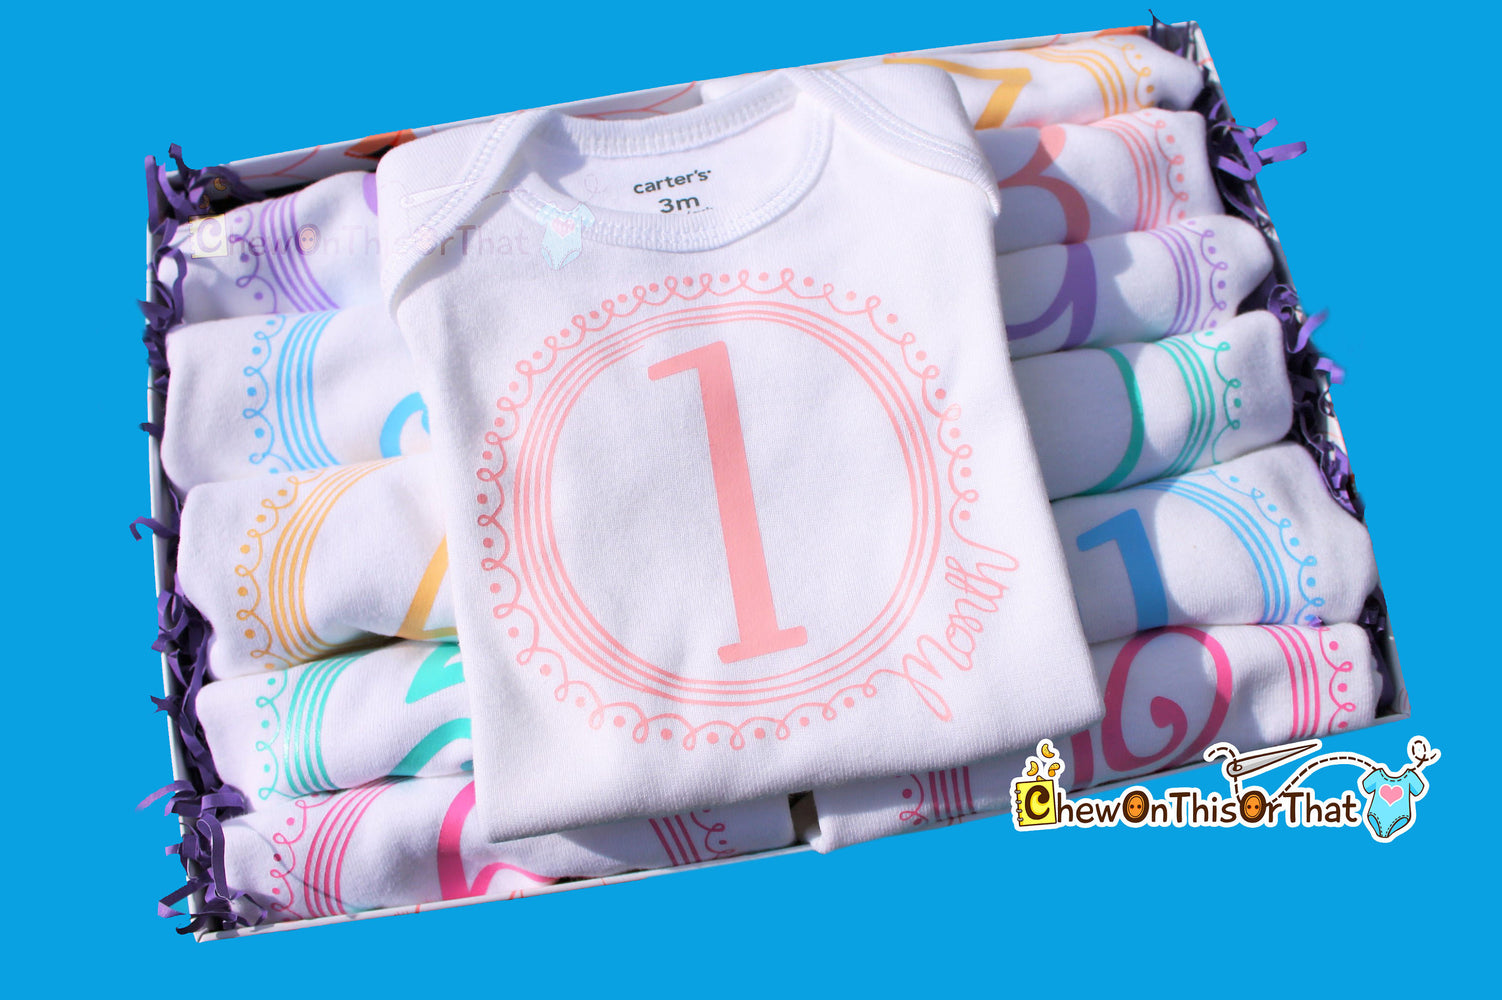 Girls 12 Month Pastel Baby Milestone Bodysuit Set, Birth Month Top, Monthly Birthday Shirt, Anniversary, New Mom Gifts, Baby Shower Set - Chew On This Or That